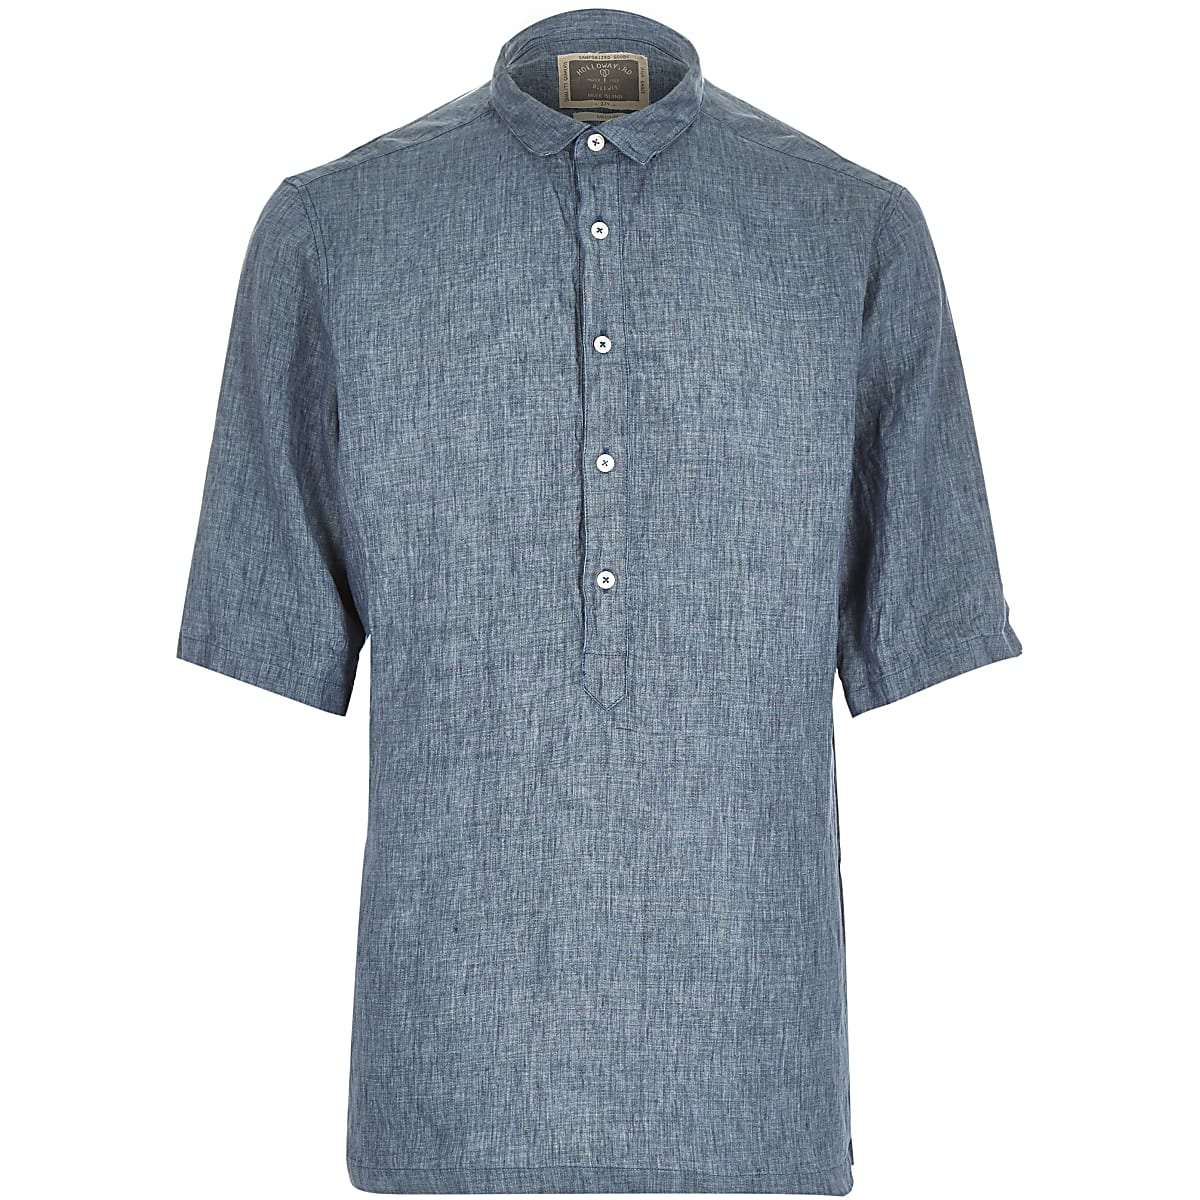 Green Holloway Road linen shirt